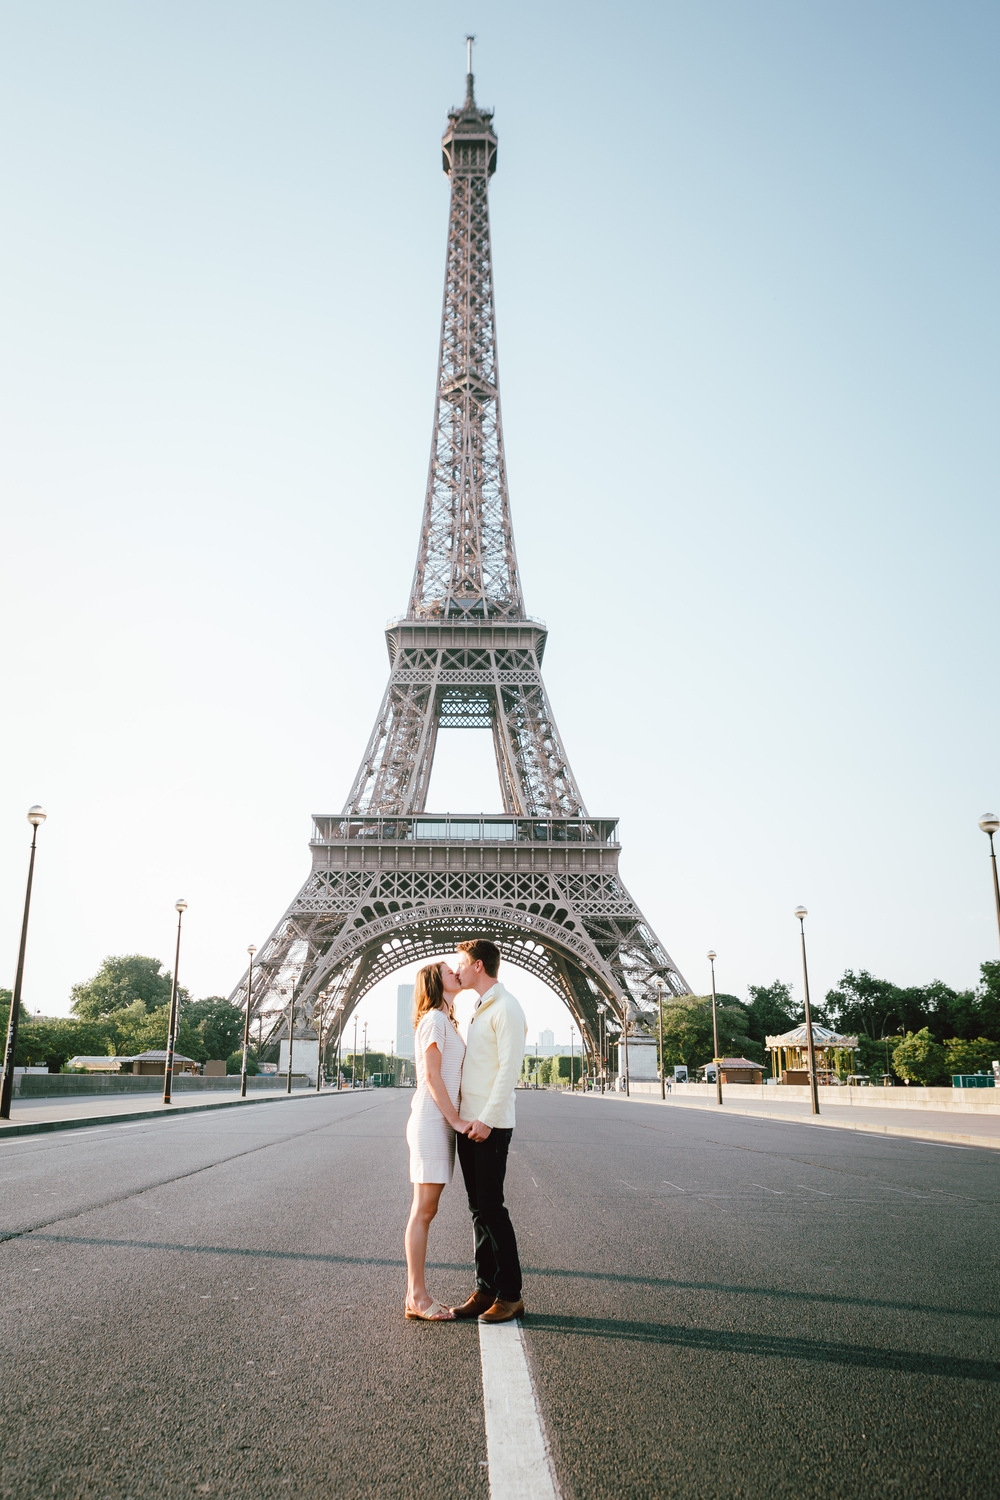 Paris-Photographer-Eiffel-Tower-Propose-in-Paris-Kiss-Eiffel-Iena-Iheartparisfr.jpg